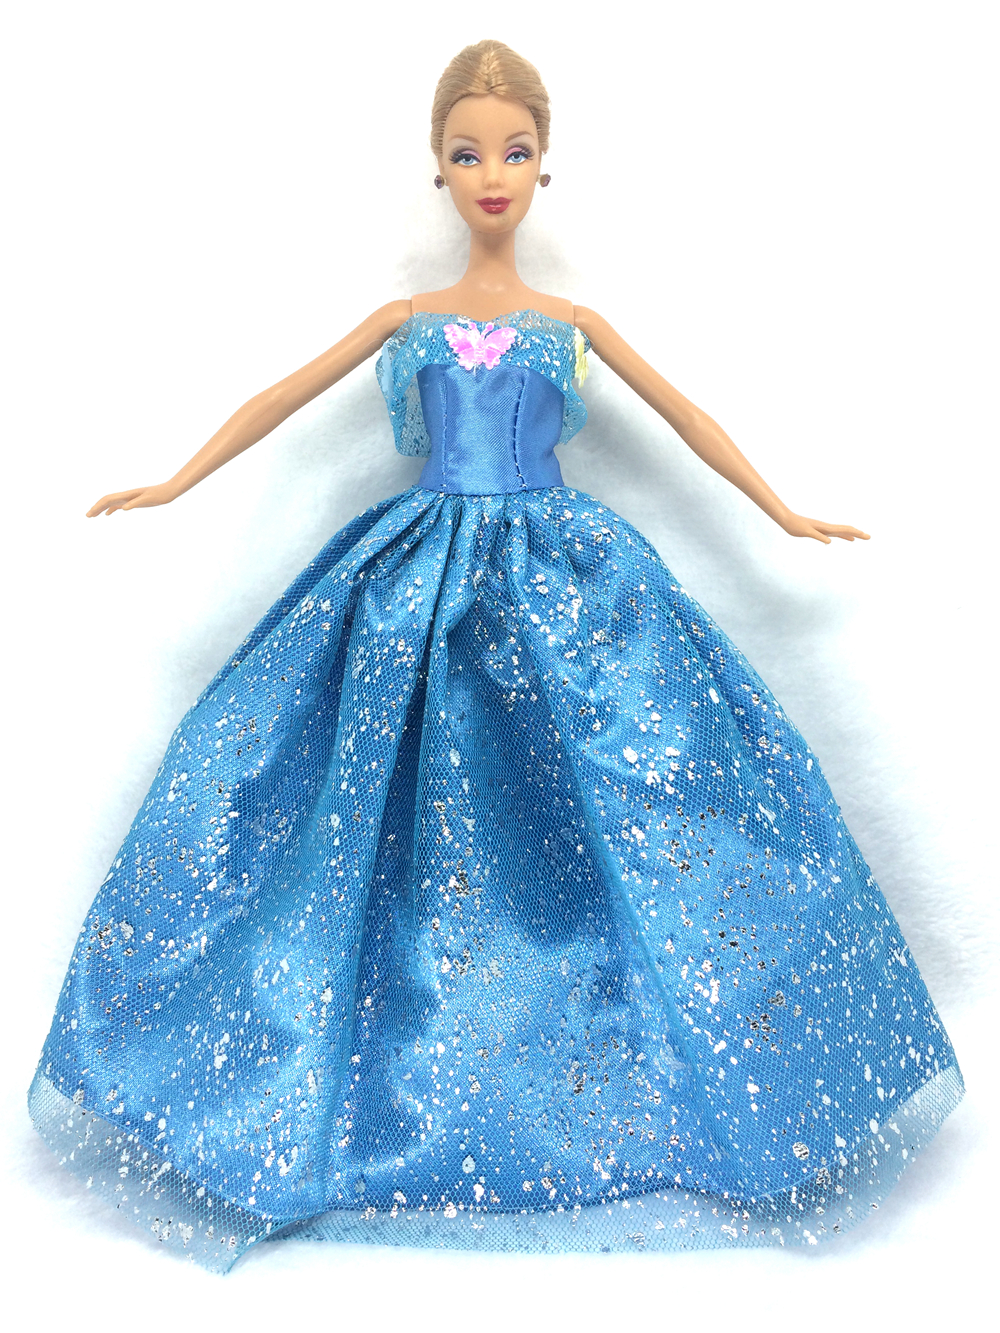 NK One Set Princess Doll Gown Comparable Fairy Story Cinderella Wedding ceremony Gown Robe Social gathering Outfit For Barbie Doll Greatest Ladies' Reward 6I